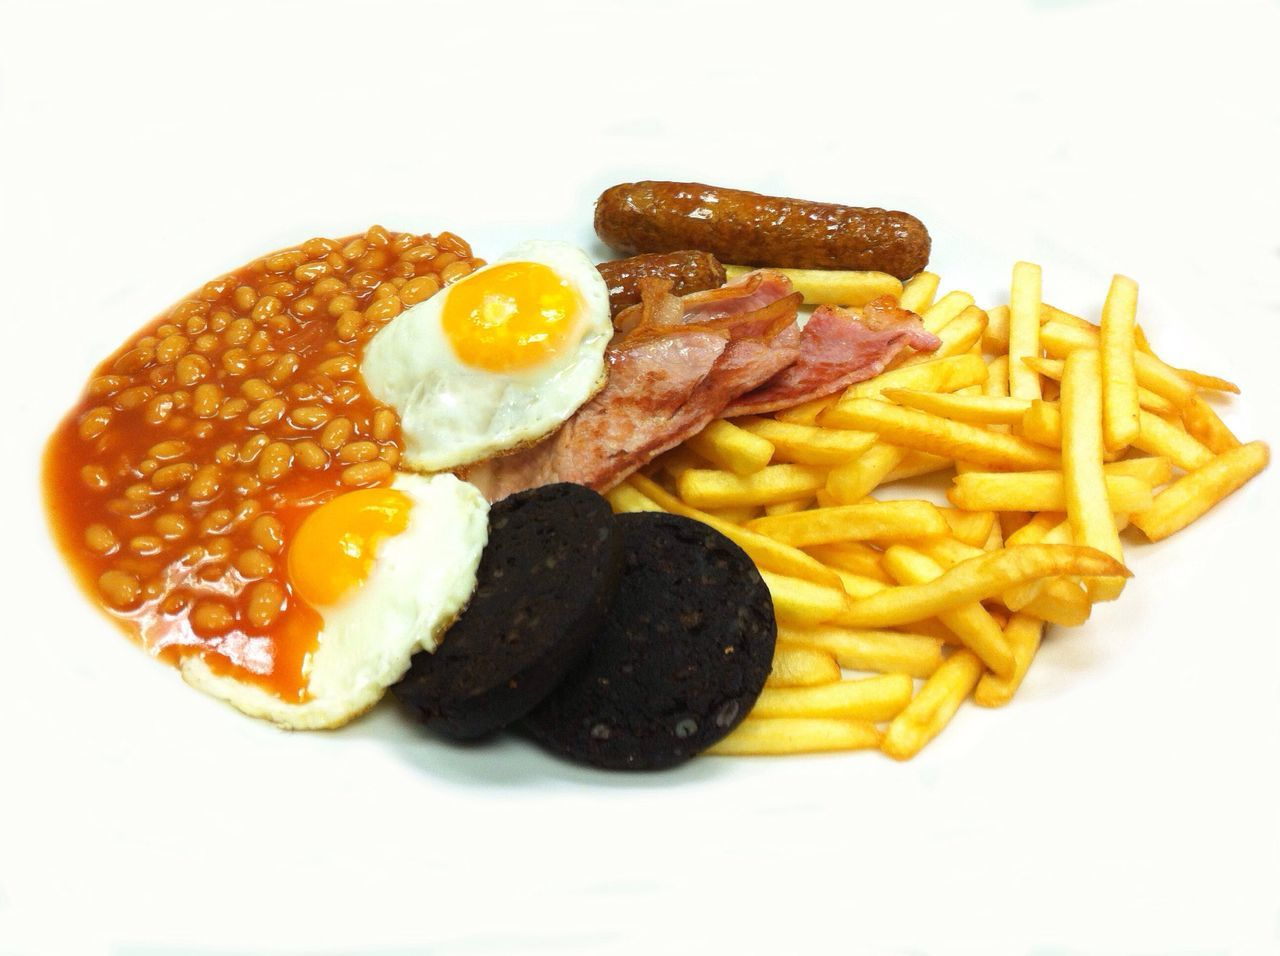 English breakfast scene Fried Egg Fried White Background Food And Drink Egg Food English Breakfast Prepared Potato Breakfast Sausage Studio Shot Bacon Meat No People Ready-to-eat Unhealthy Eating Processed Meat Egg Yolk Indoors  Close-up